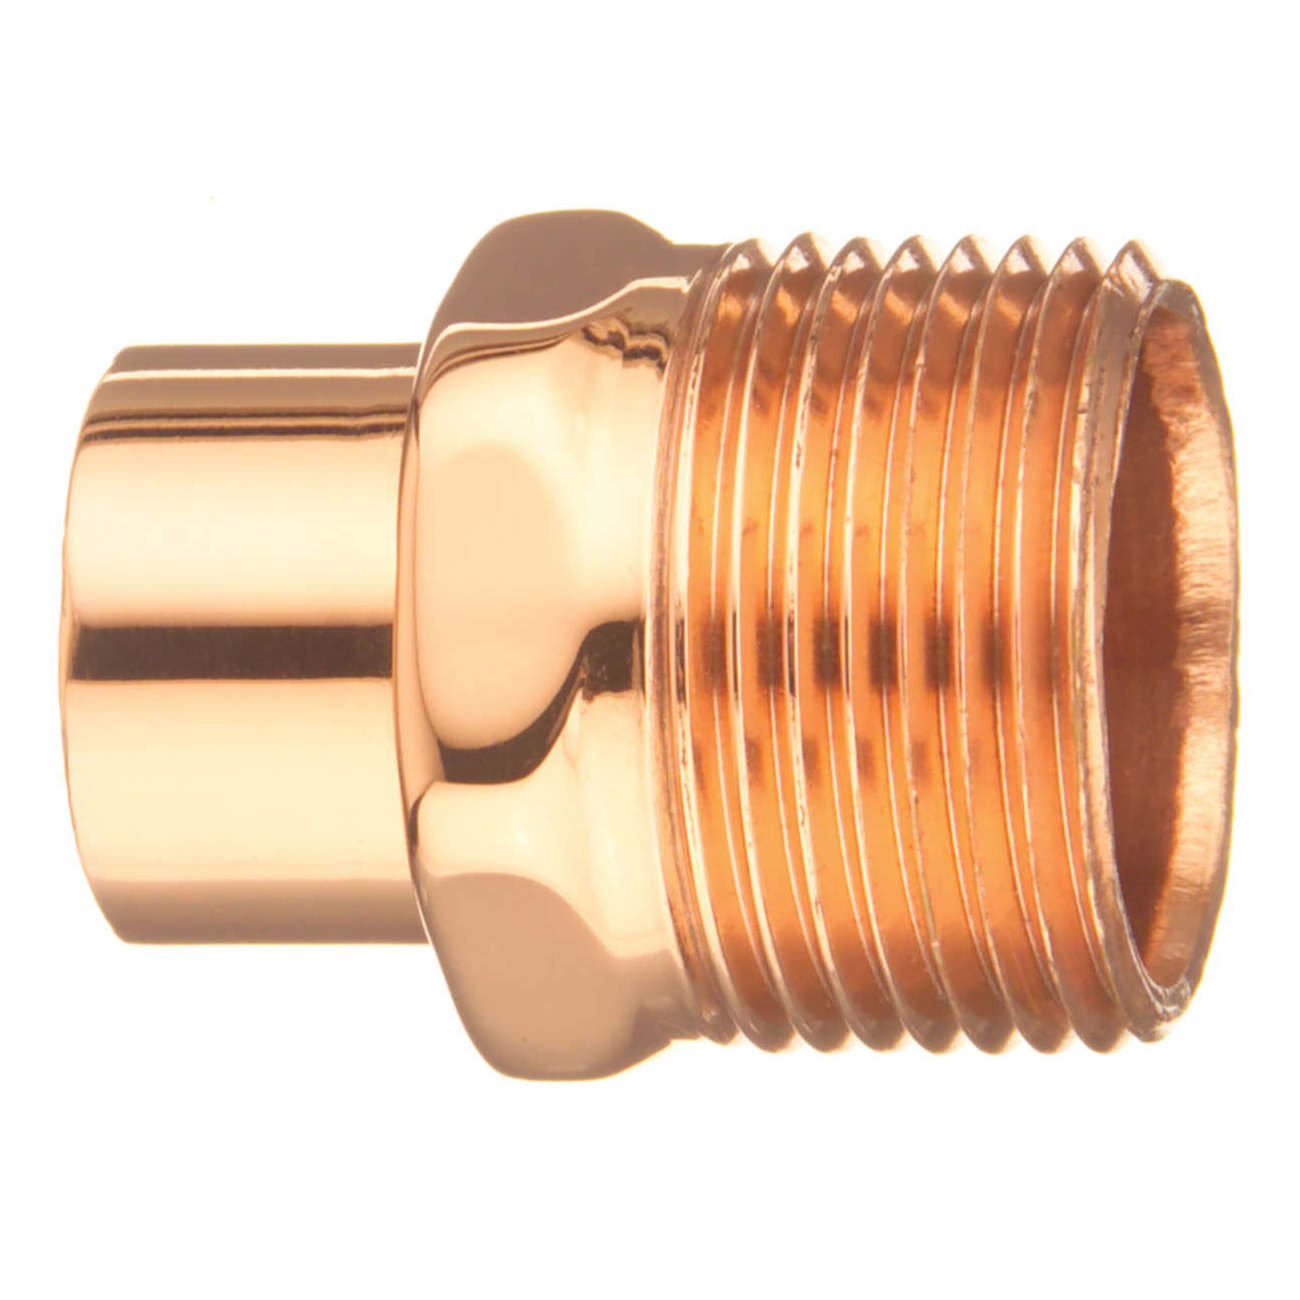 EPC 10030444 104-2 Solder Male Street Adapter, 3/4 in, Fitting x MNPT, Copper, Domestic